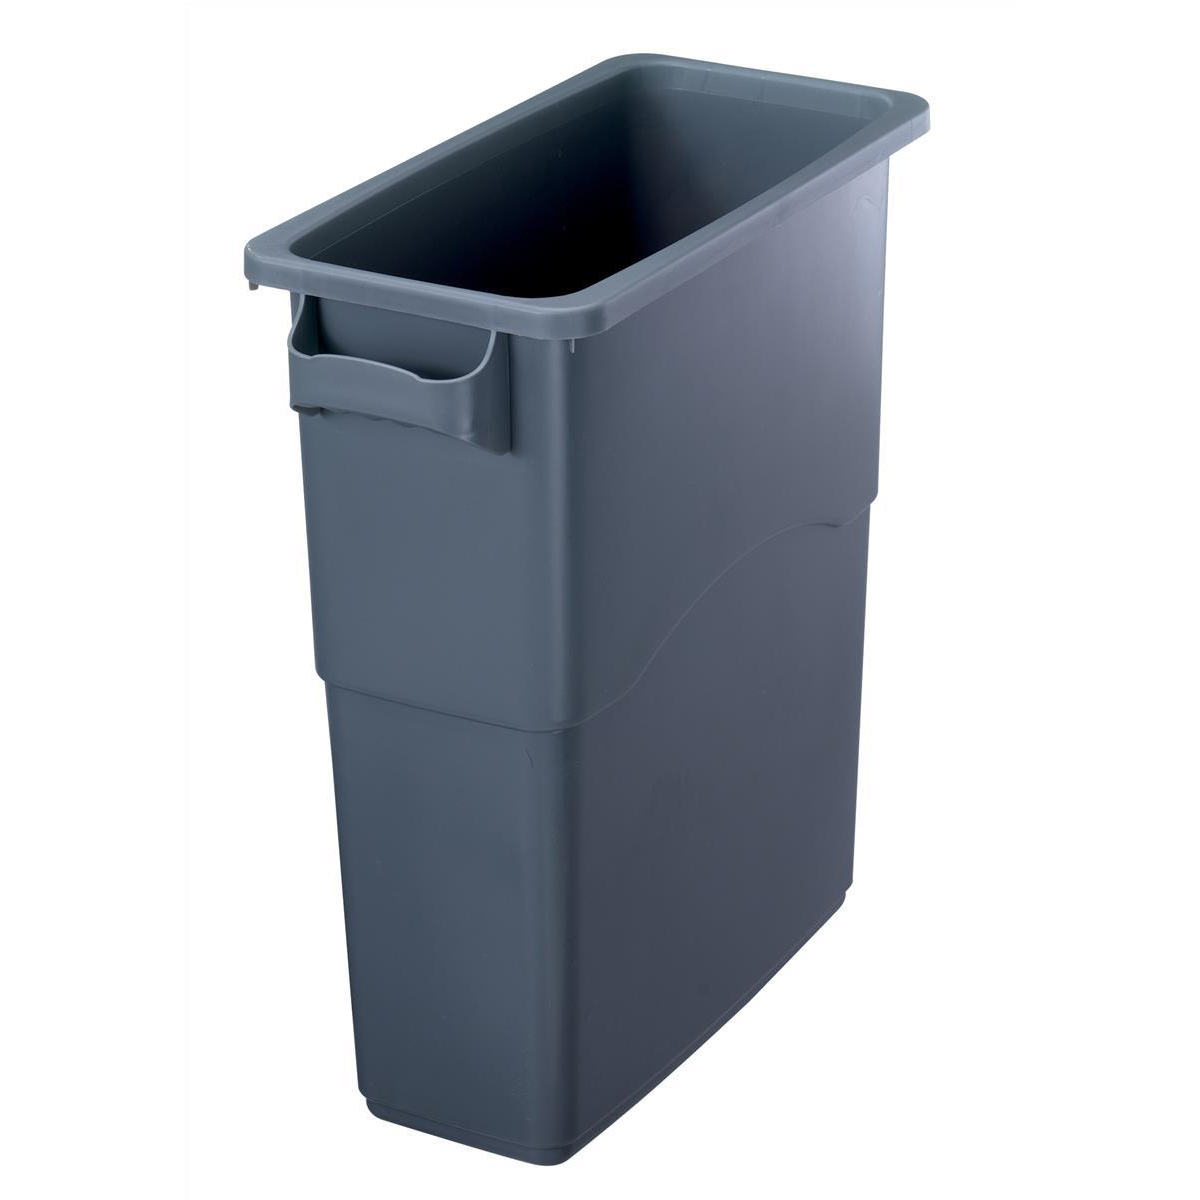 Recycling Bins EcoSort Recycling System Midi Bin 60 Litre Capacity 275x590x635mm Grey Ref SPICEMIDGREY1